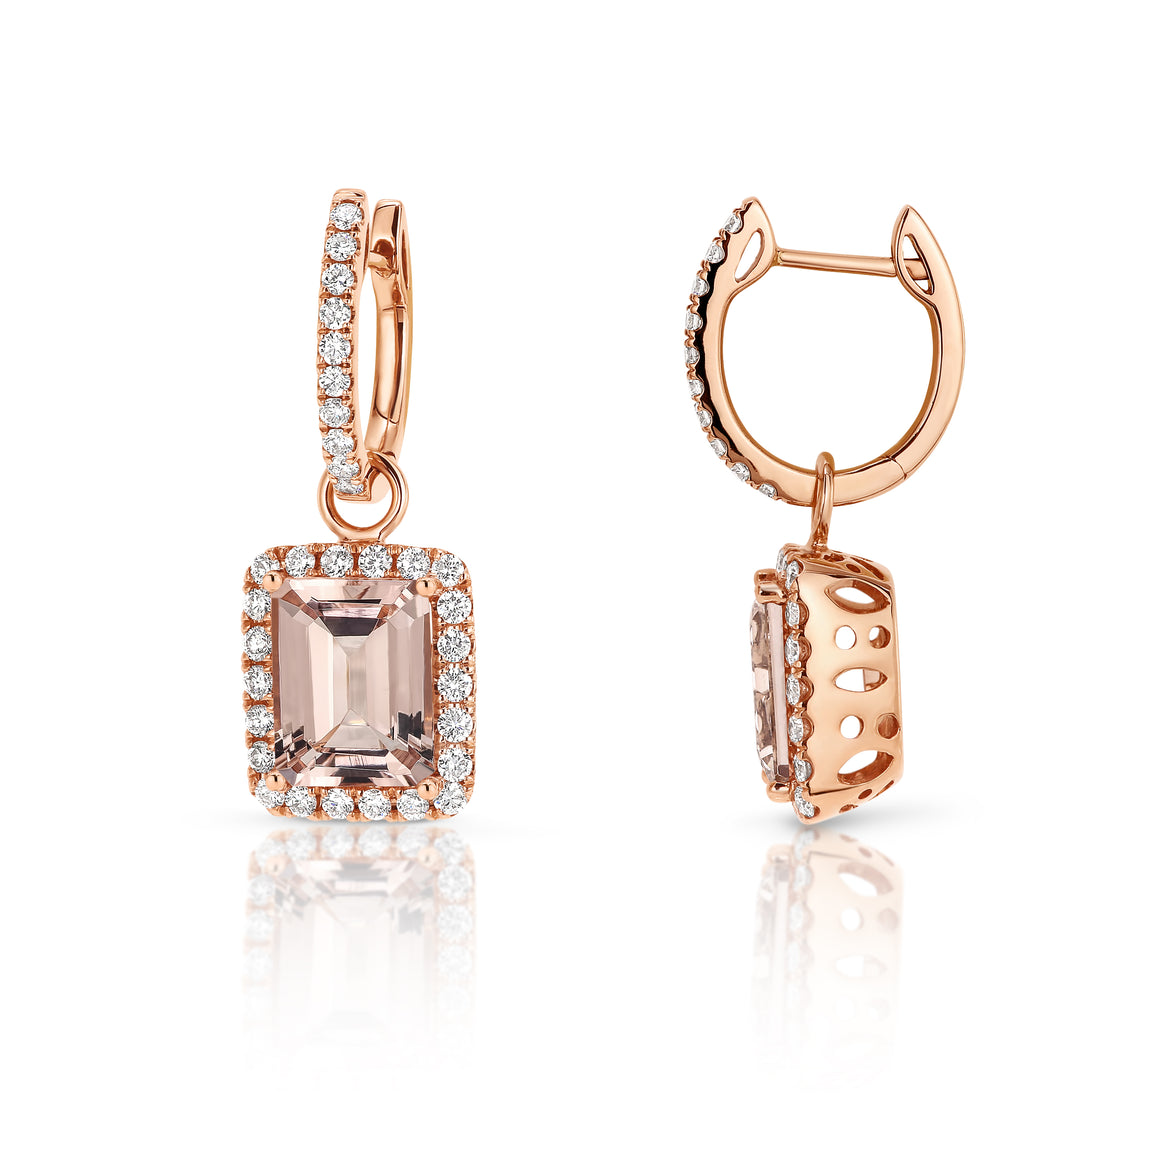 Morganite & Diamond 'Eden' Earrings - Gemma Stone  ABN:51 621 127 866